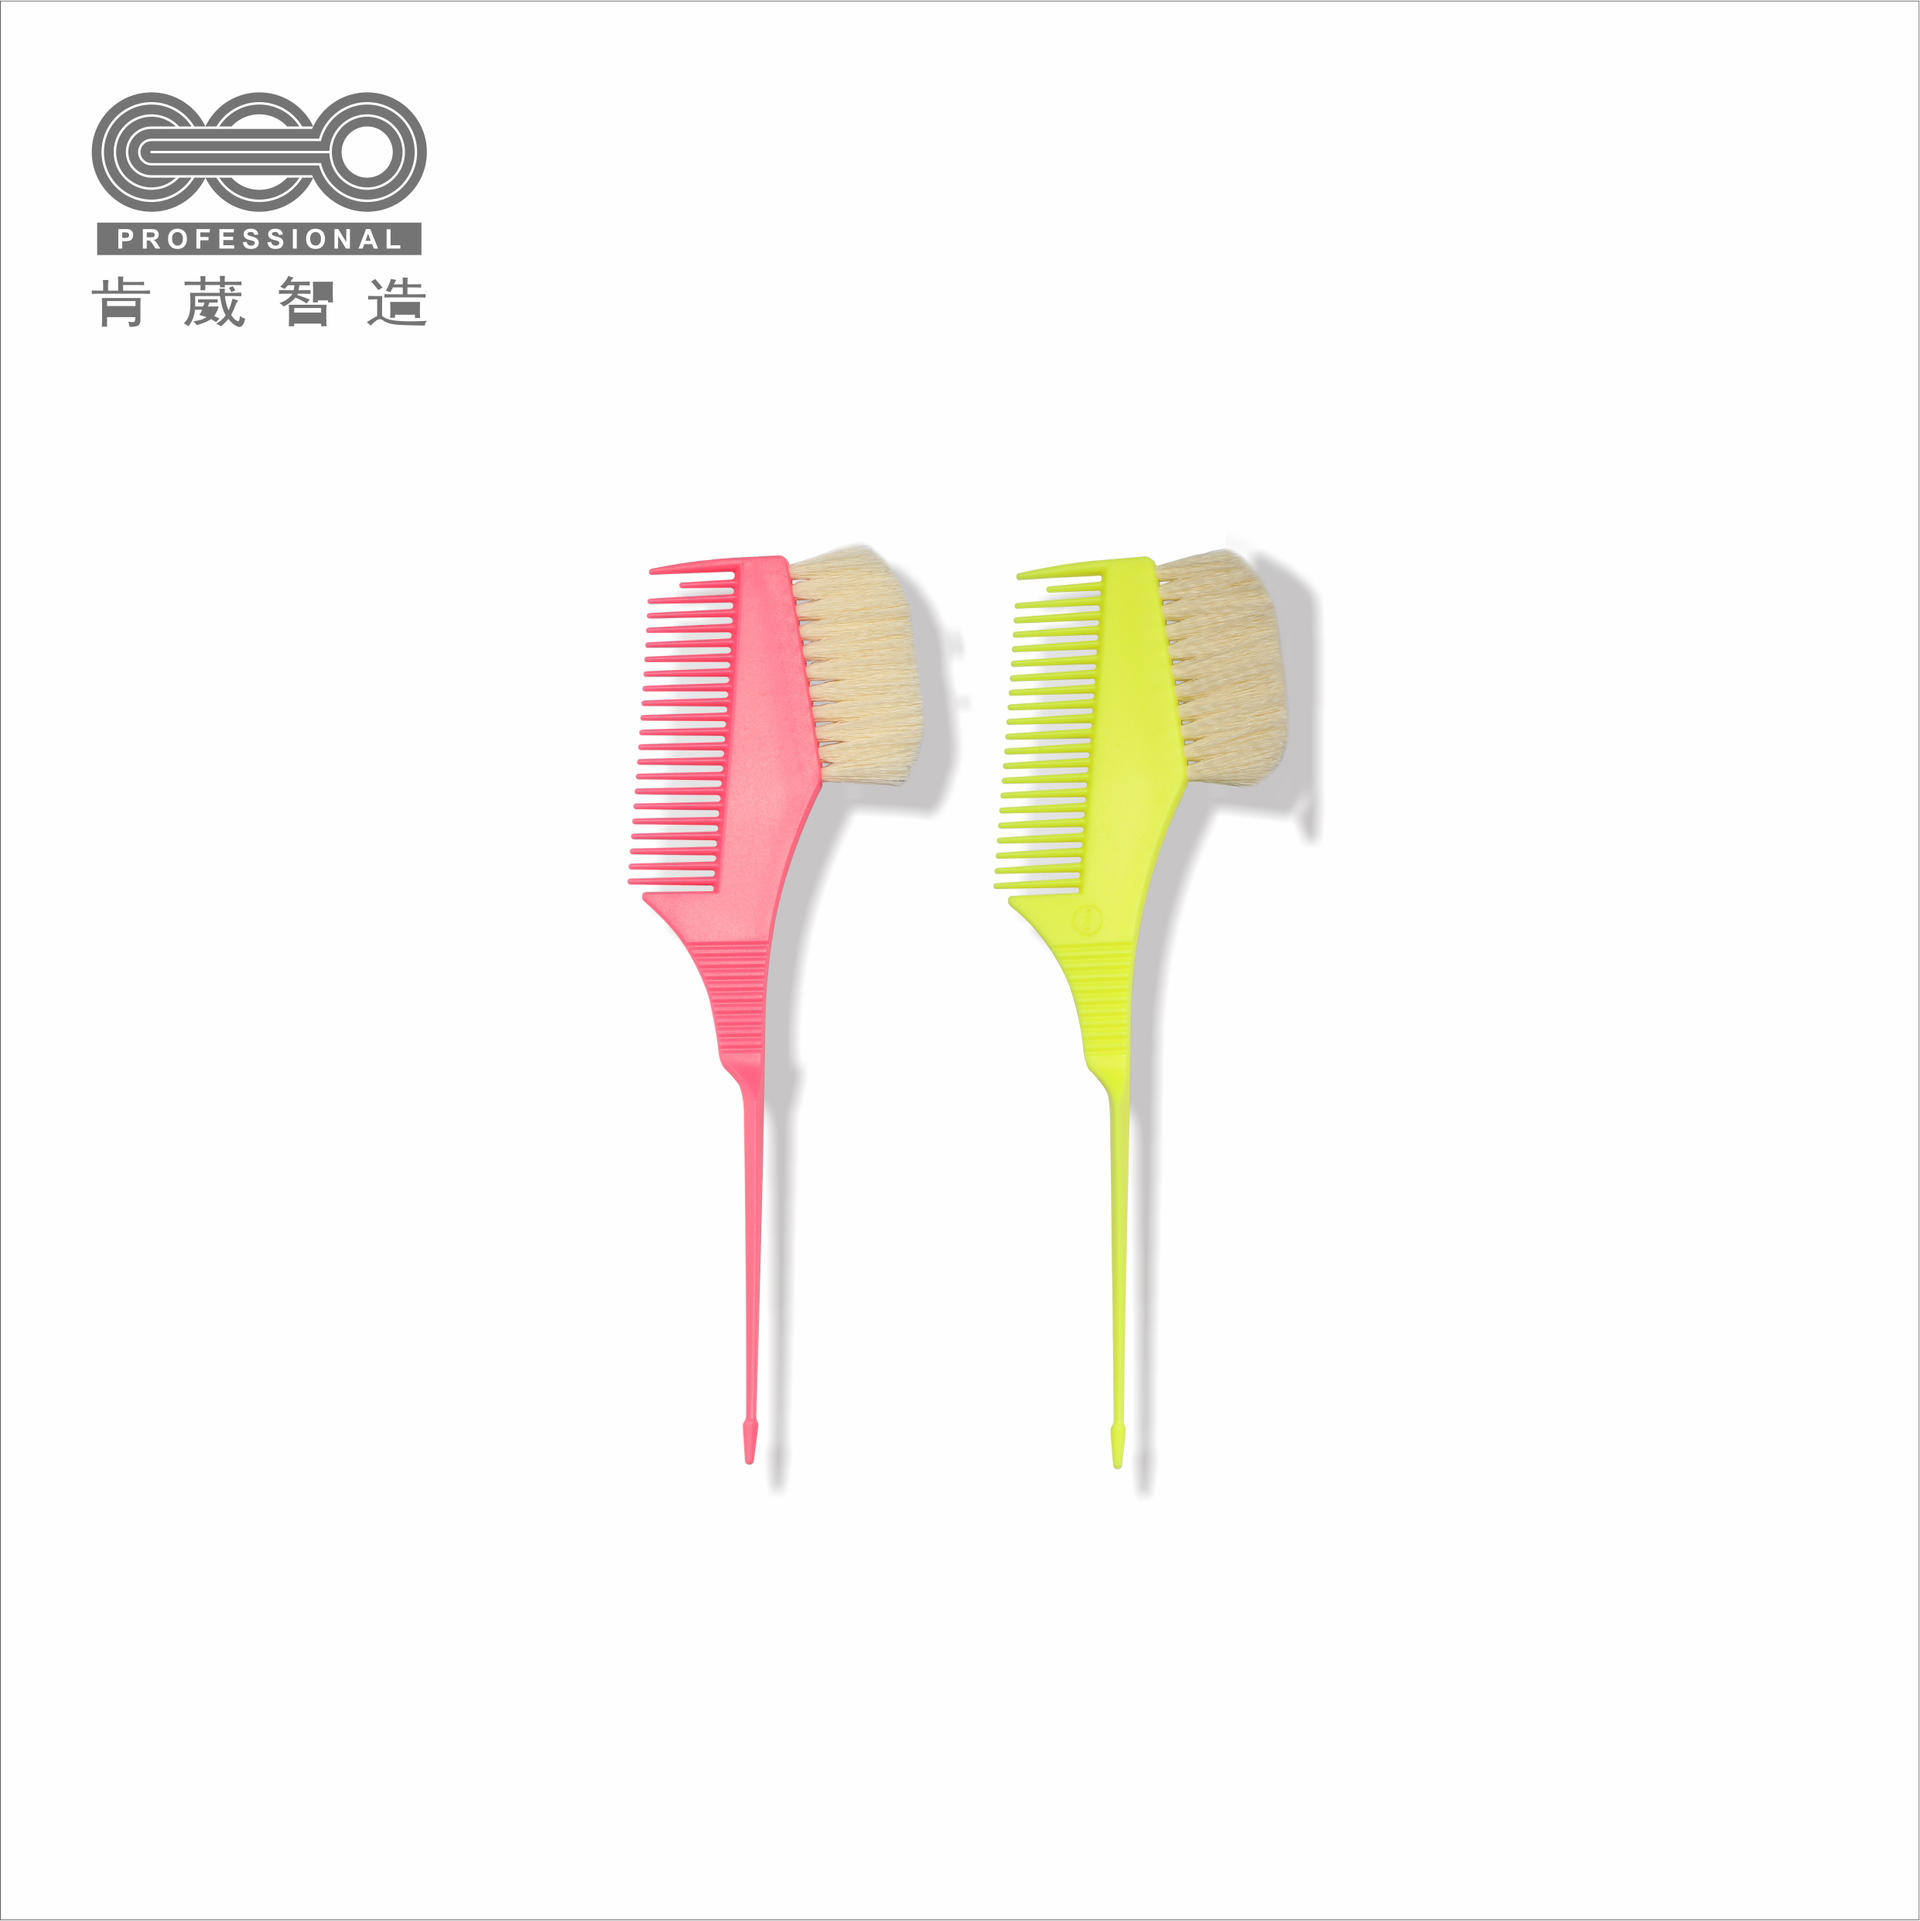 Wholesale Salon Hair Dye Comb Product Colorful Bulk Hair Brush Tinting Brush